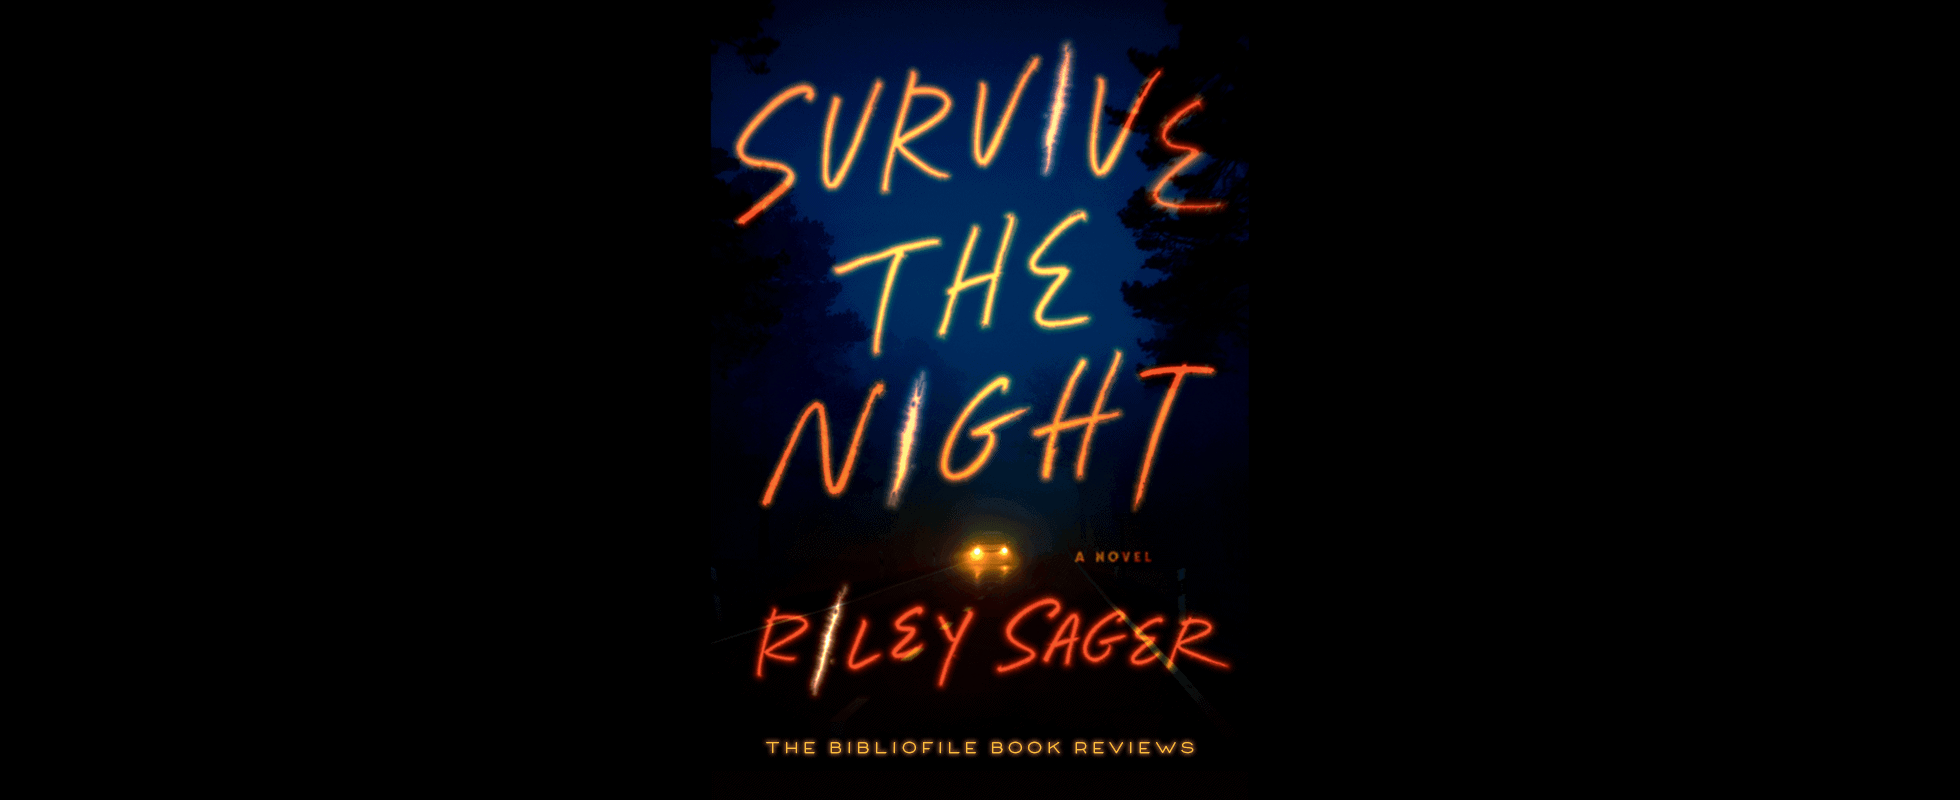 survive the night by riley sager plot summary and book review, synopsis and ending